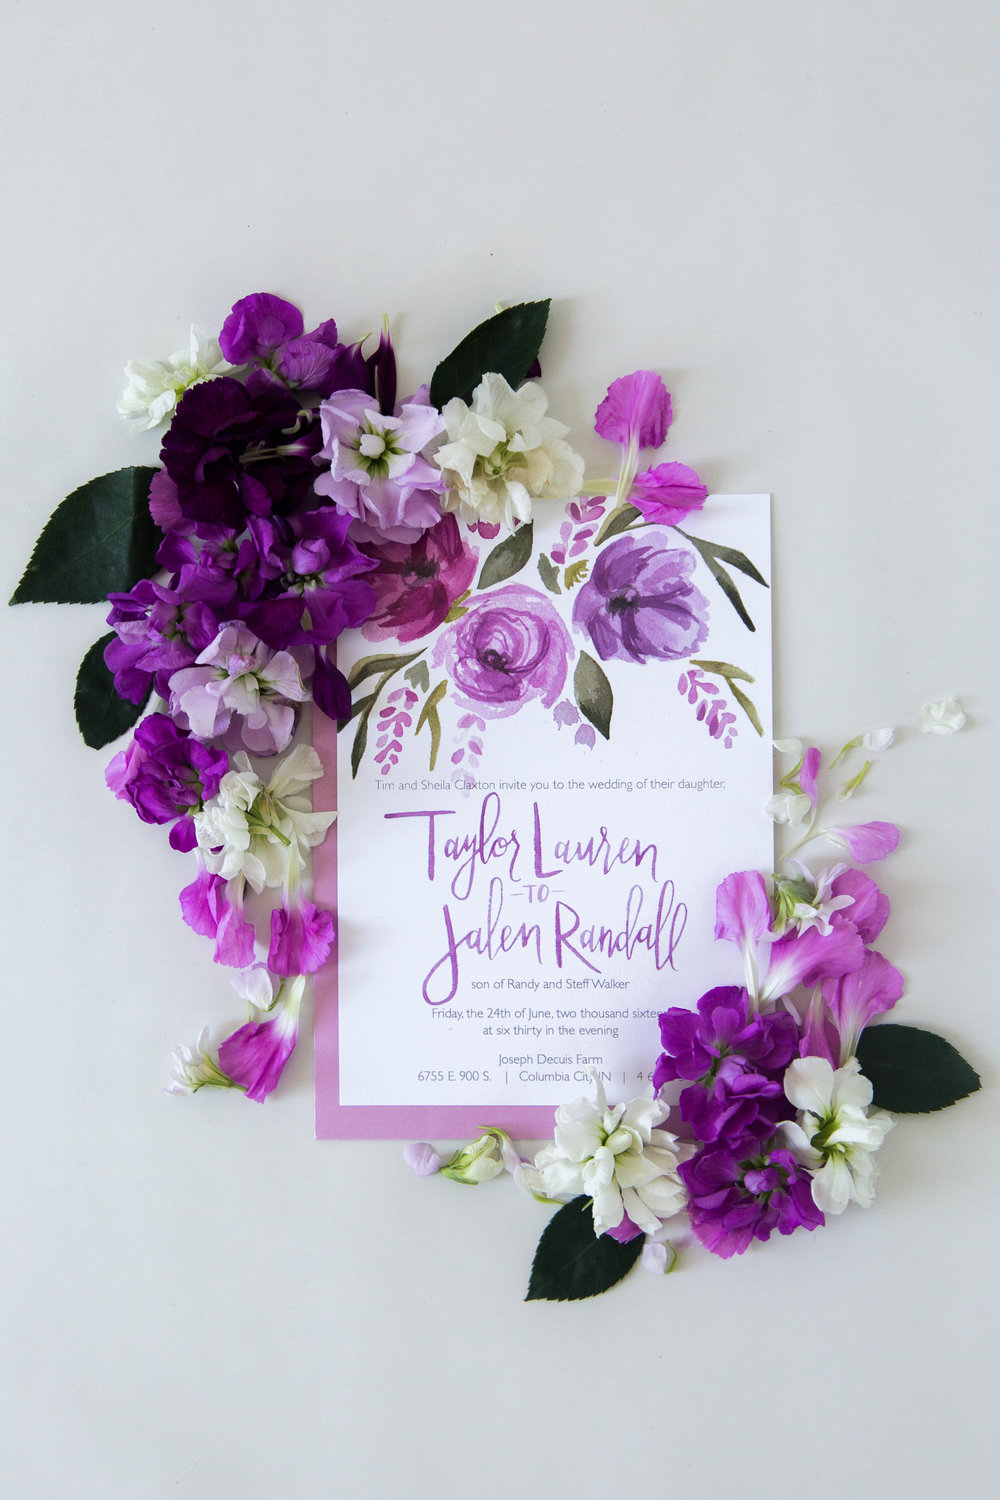 Hues of purple and lavender custom wedding invitation by Sommer Letter Co.